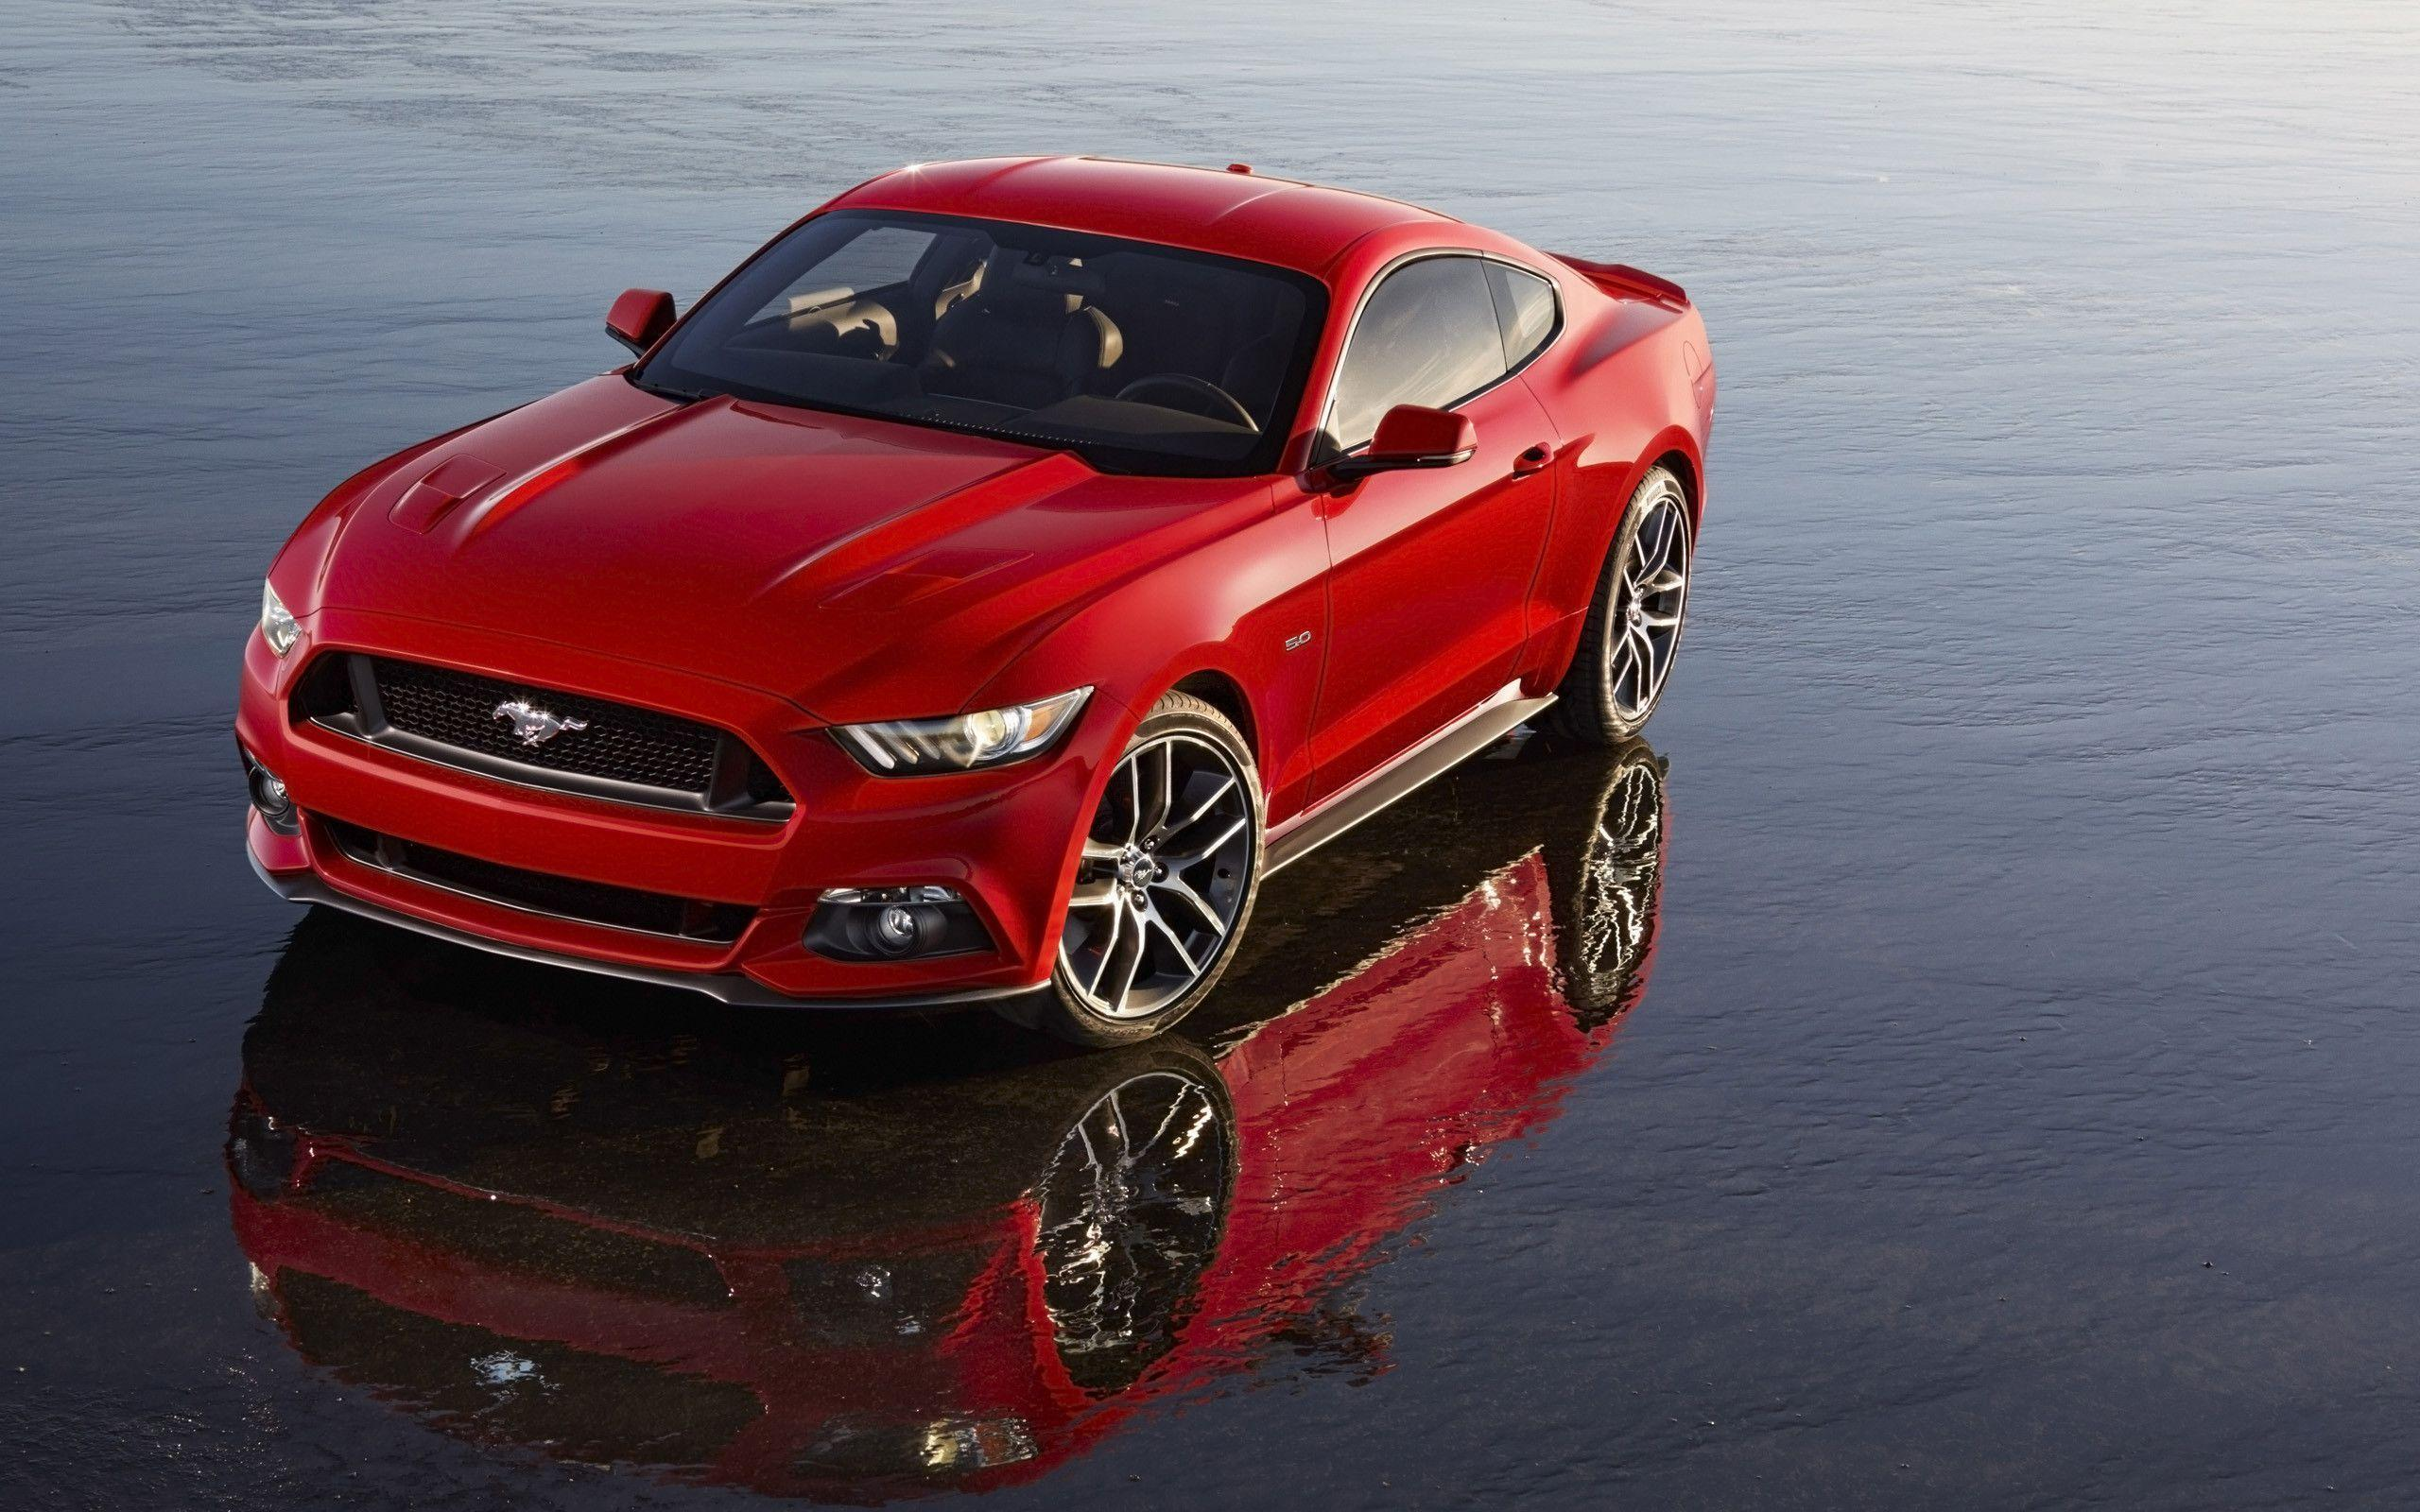 pictures of mustang cars